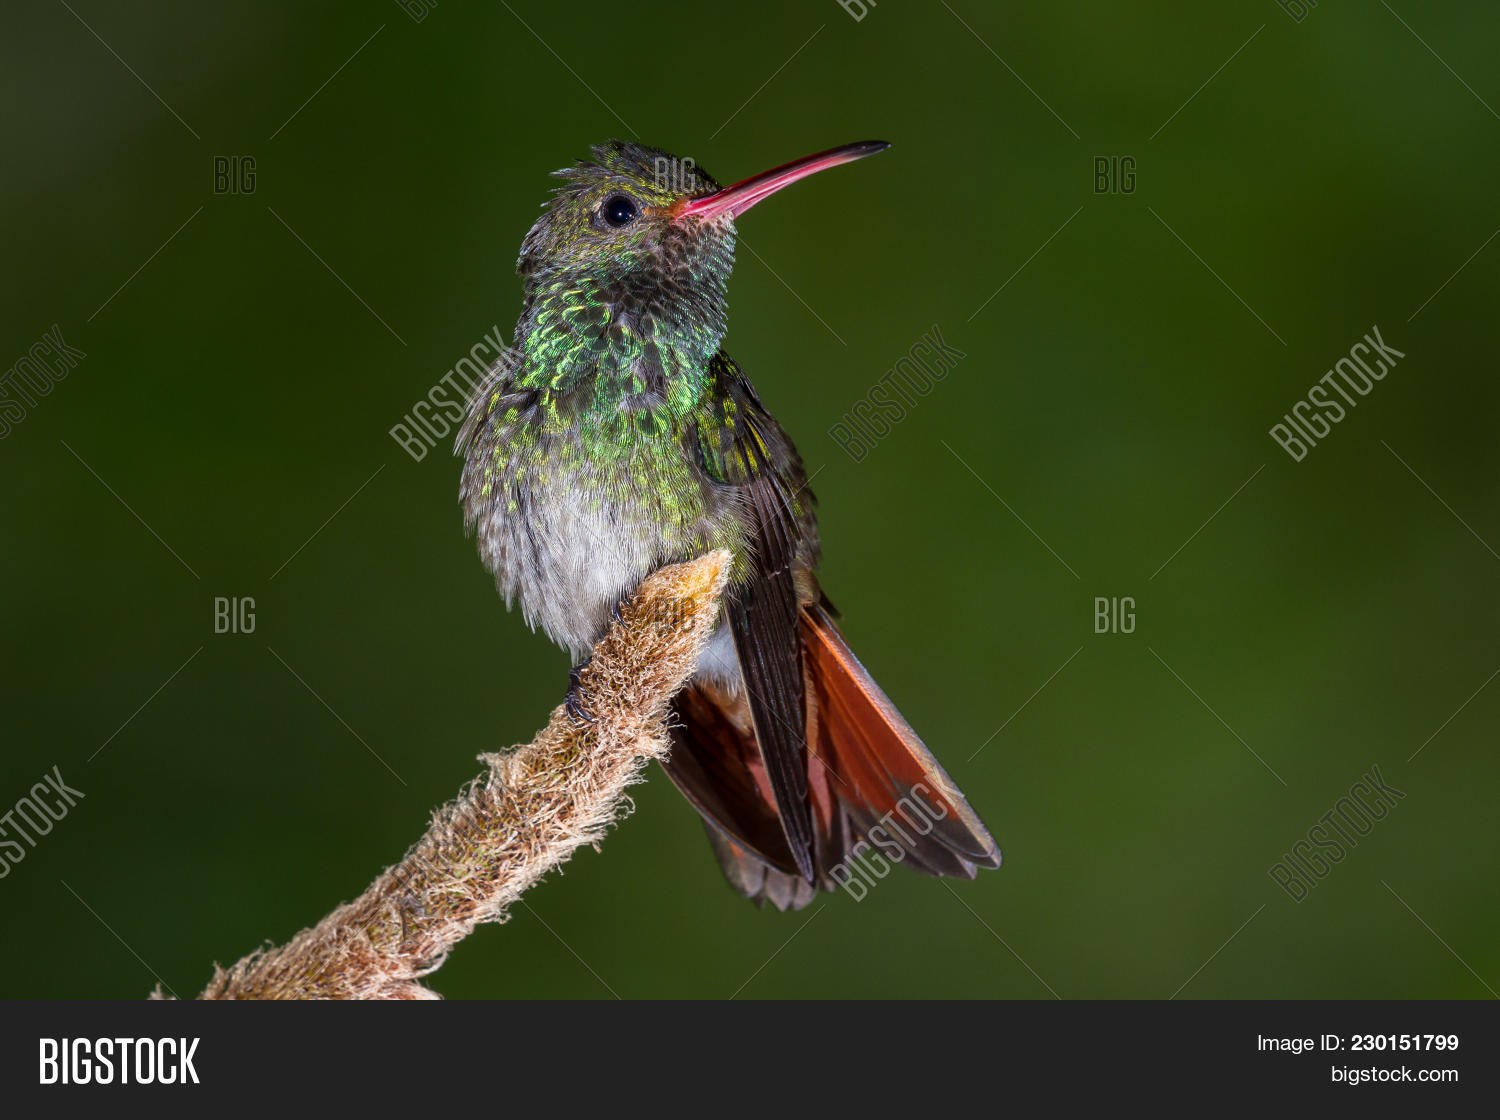 Belize,Summer,aggressive,america,animal,background,beak,beautiful,beauty,bird,blue,bright,central,close,colorful,costa,dark,detail,discover,eco,ecological,ecotourism,explore,fast,feathers,forest,green,humming,hummingbird,moving,natural,perched,rain,rica,rufous,sitting,small,spring,tailed,territorial,tourism,travel,tropical,wild,wildlife,wings